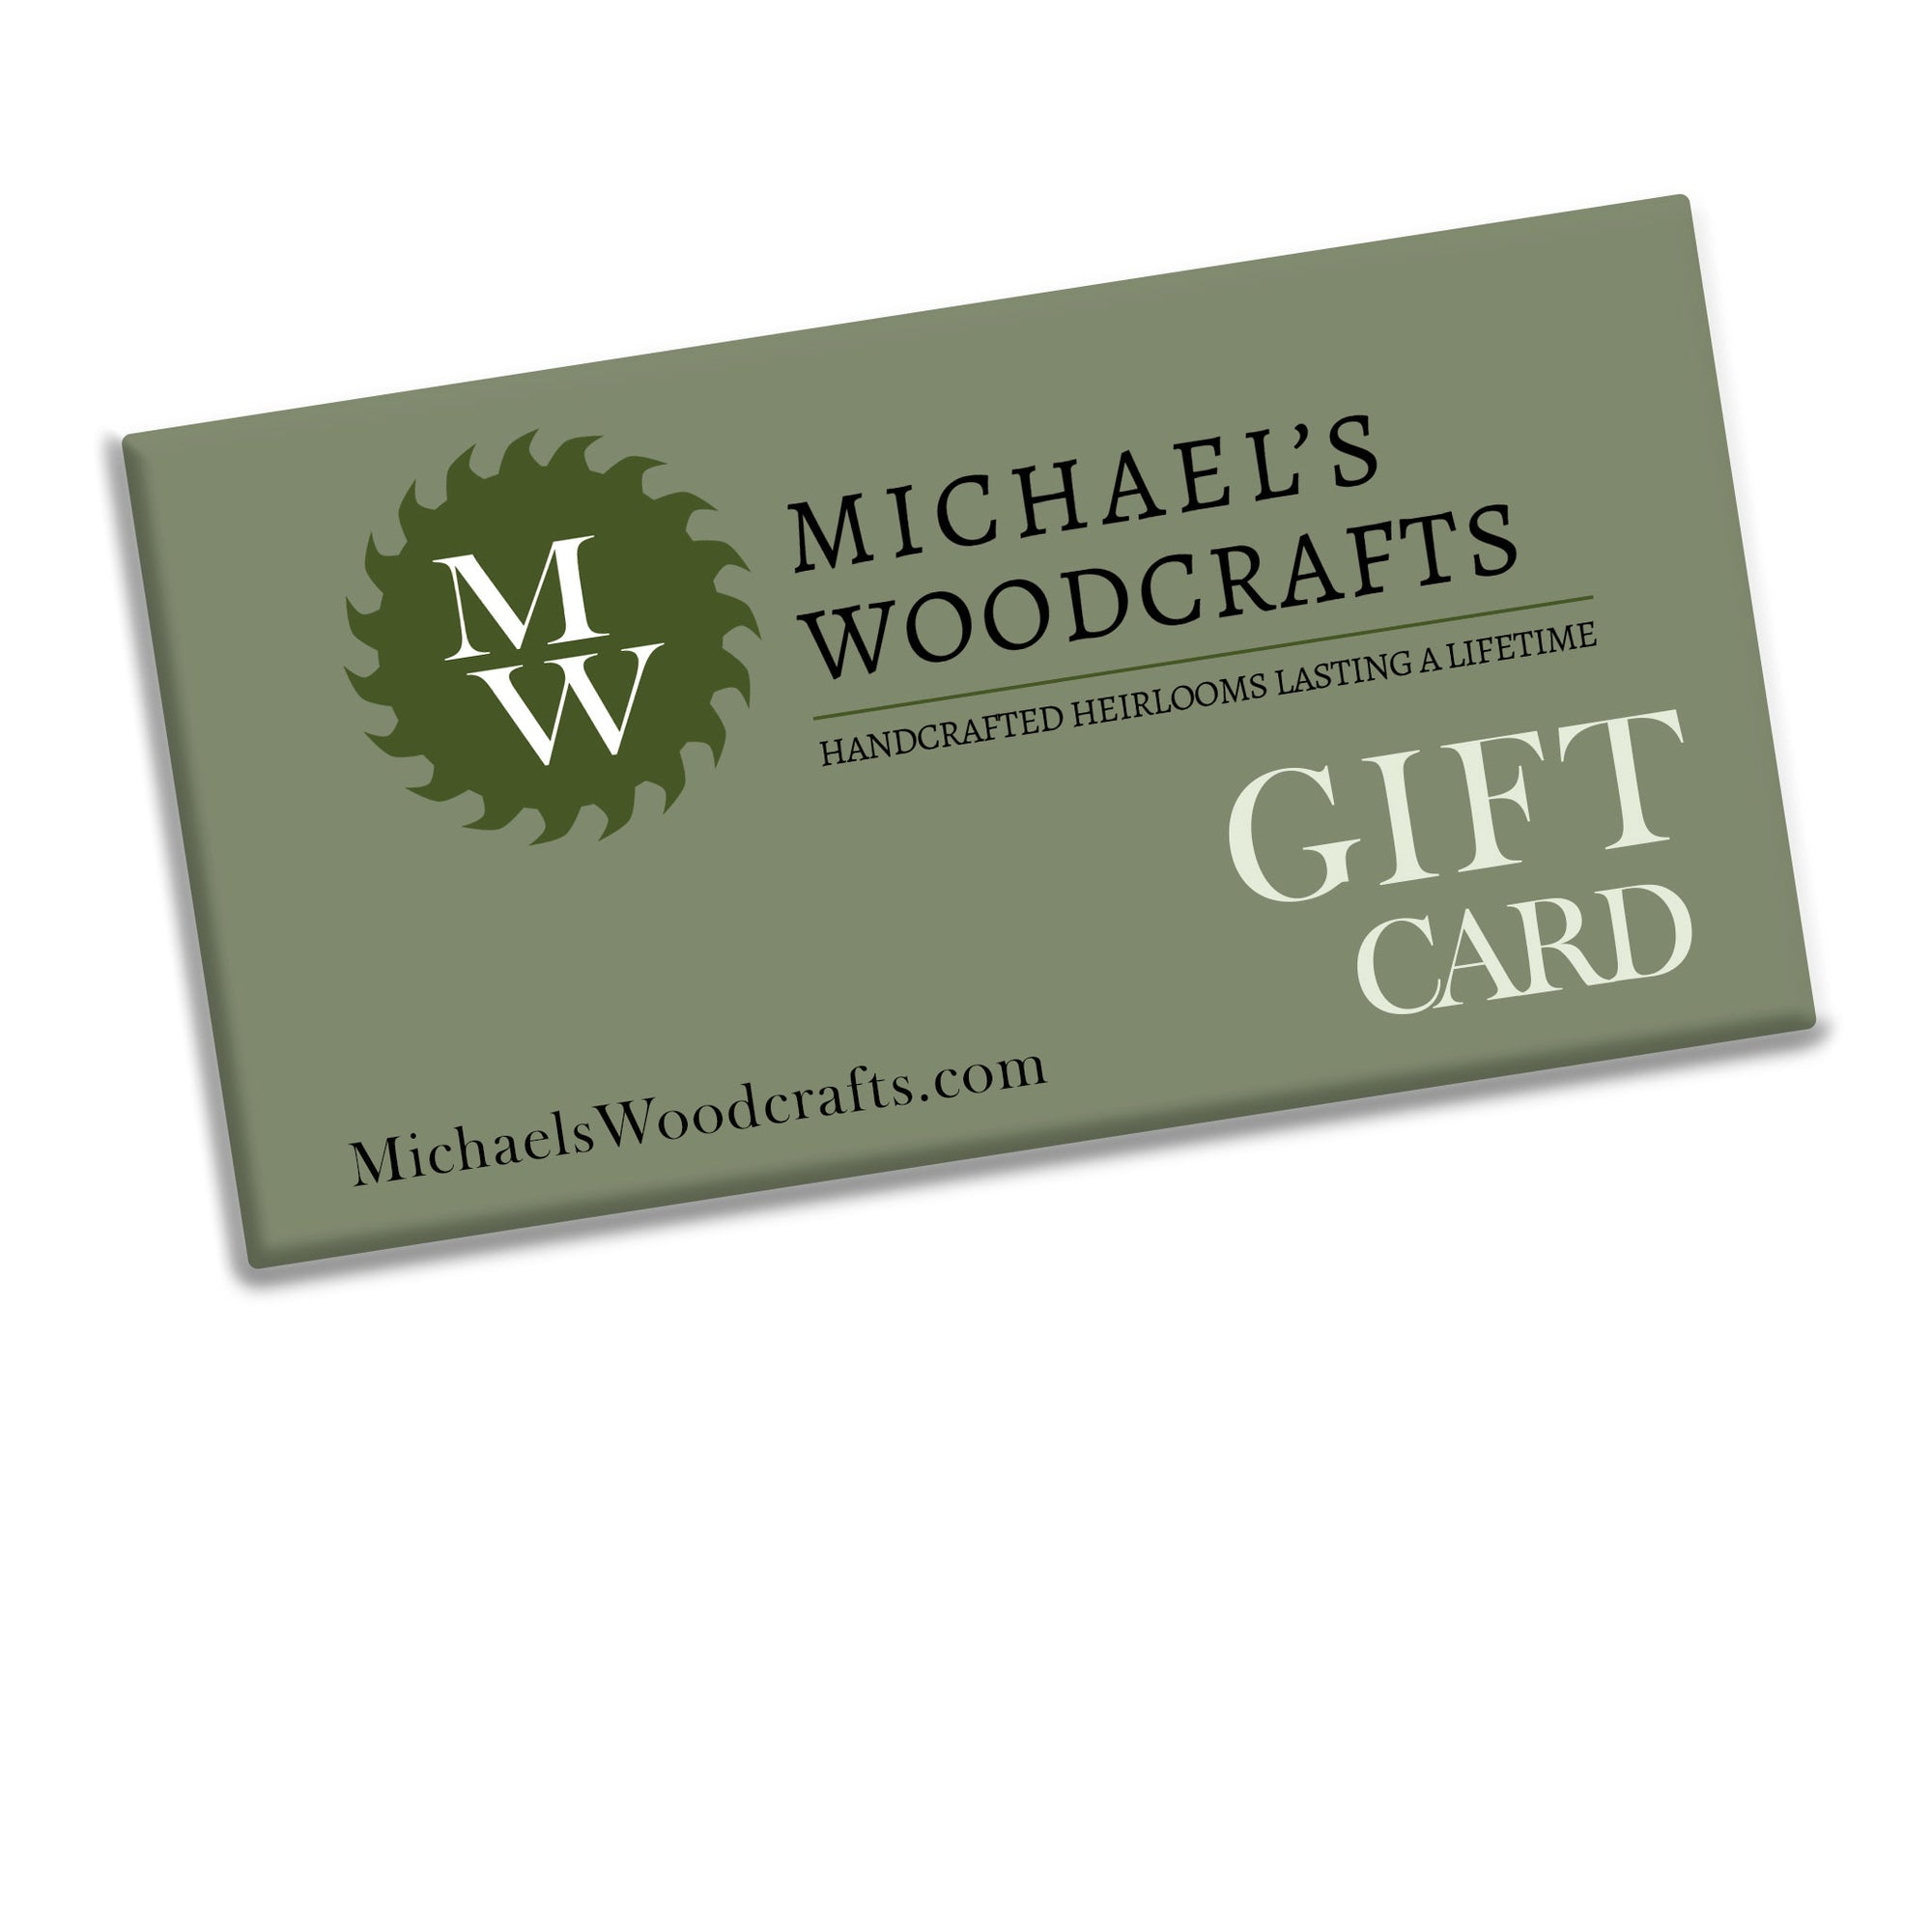 Gift card to michaelswoodcrafts.com